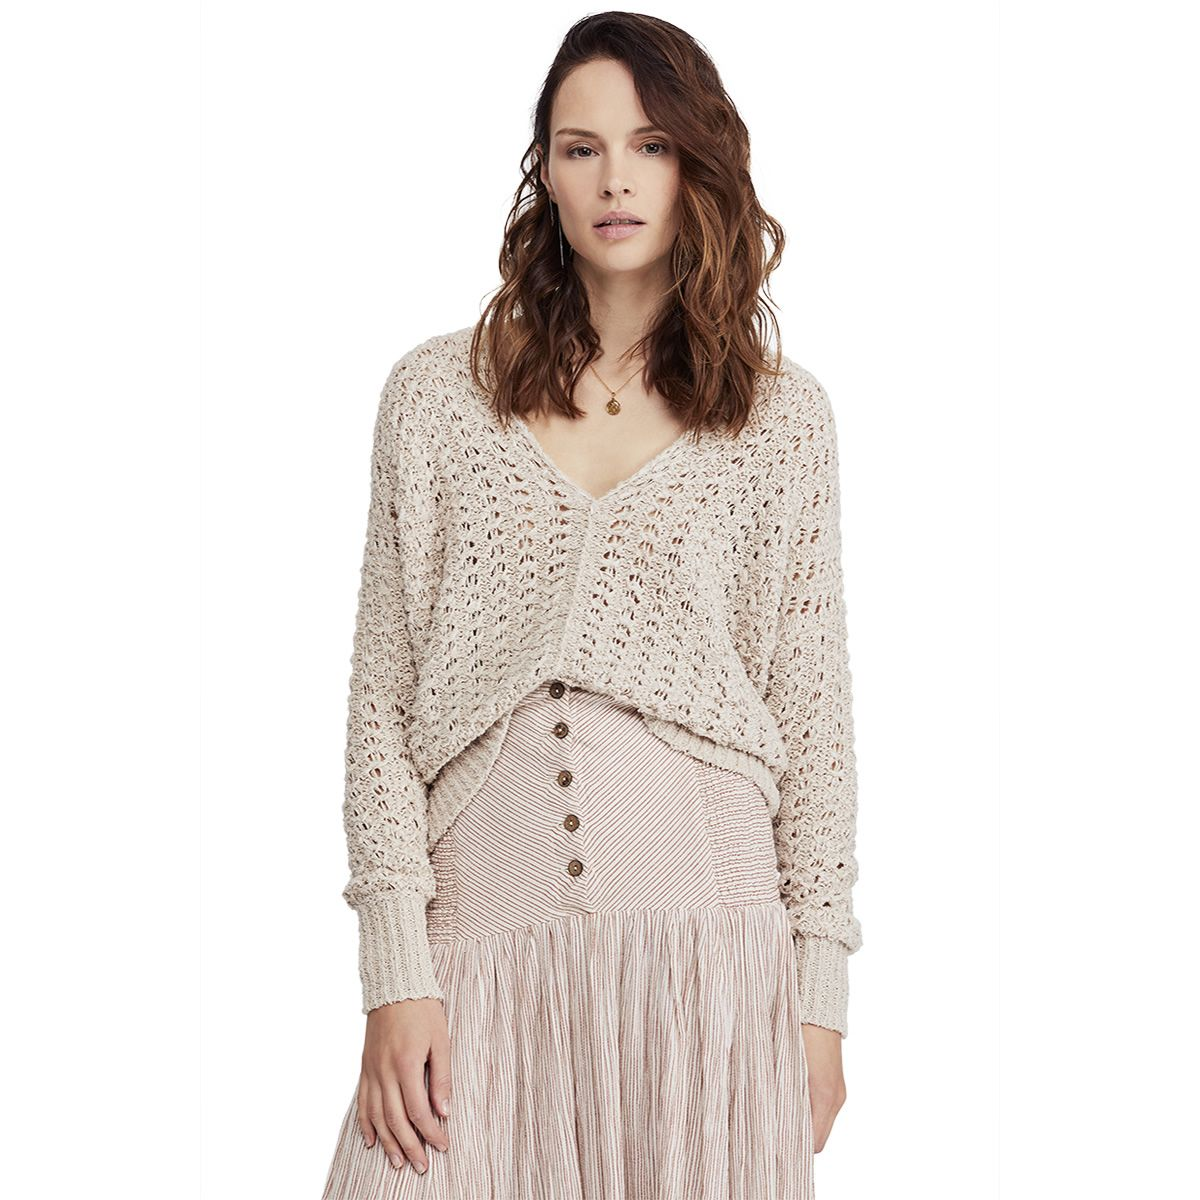 ad34e031cd35 Free People Clothing - Womens Apparel - Macy s